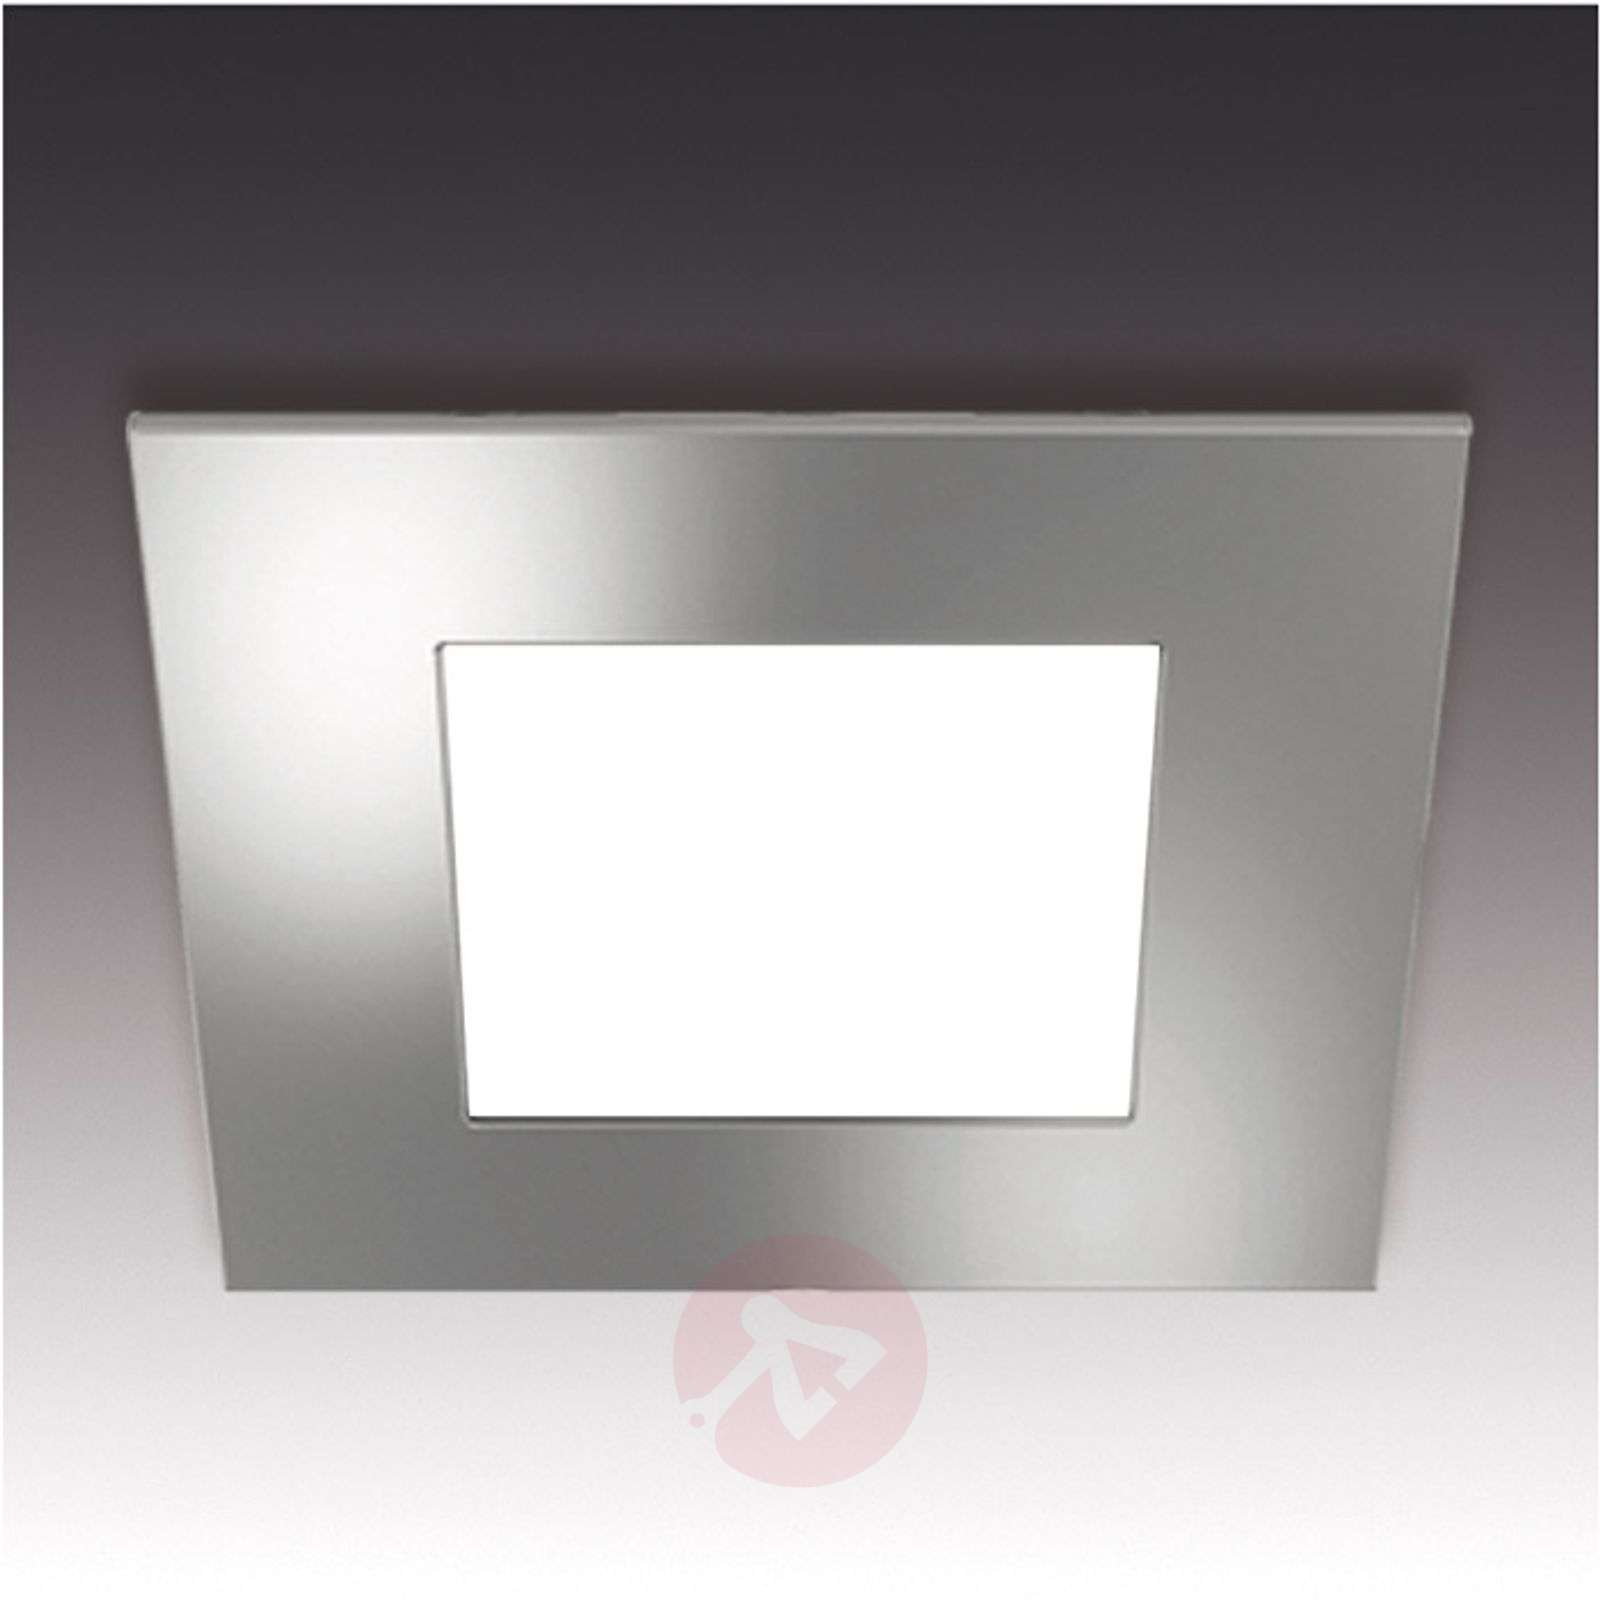 3 square recessed lights fq 68 led warm white lights 3 square recessed lights fq 68 led warm white 4514278 01 aloadofball Gallery